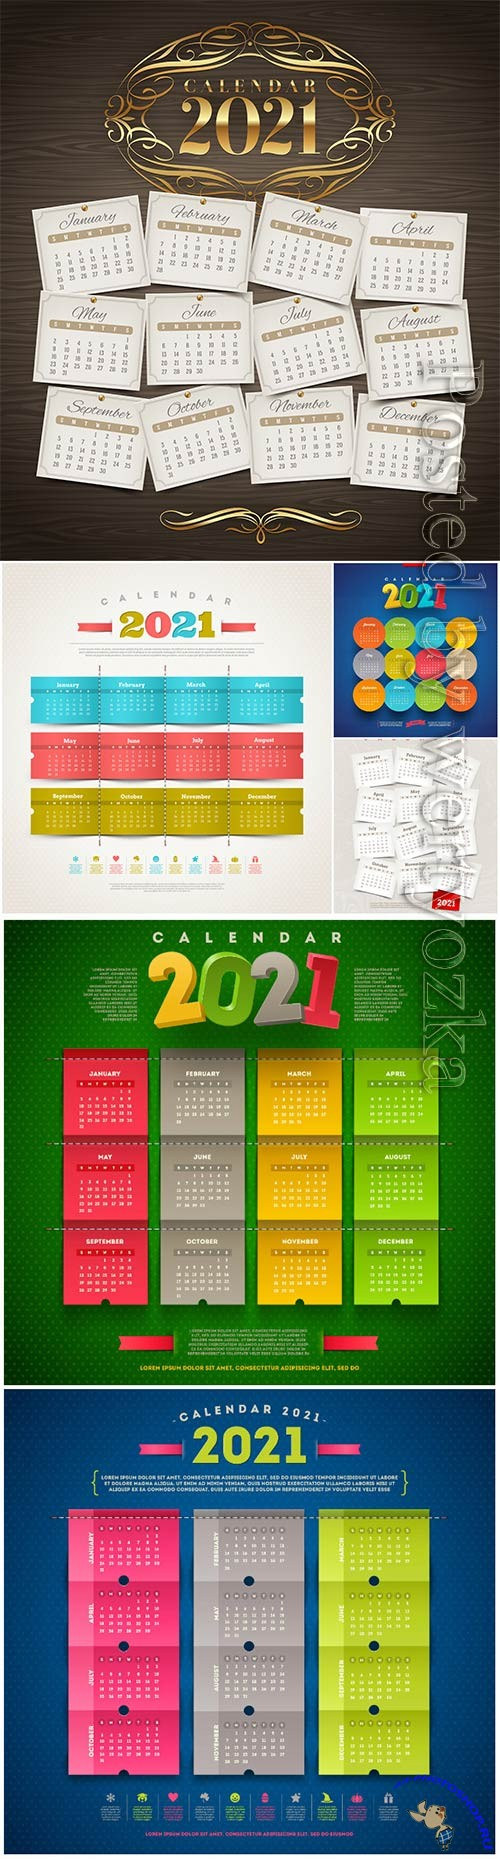 Calendar for 2021 year template vector design